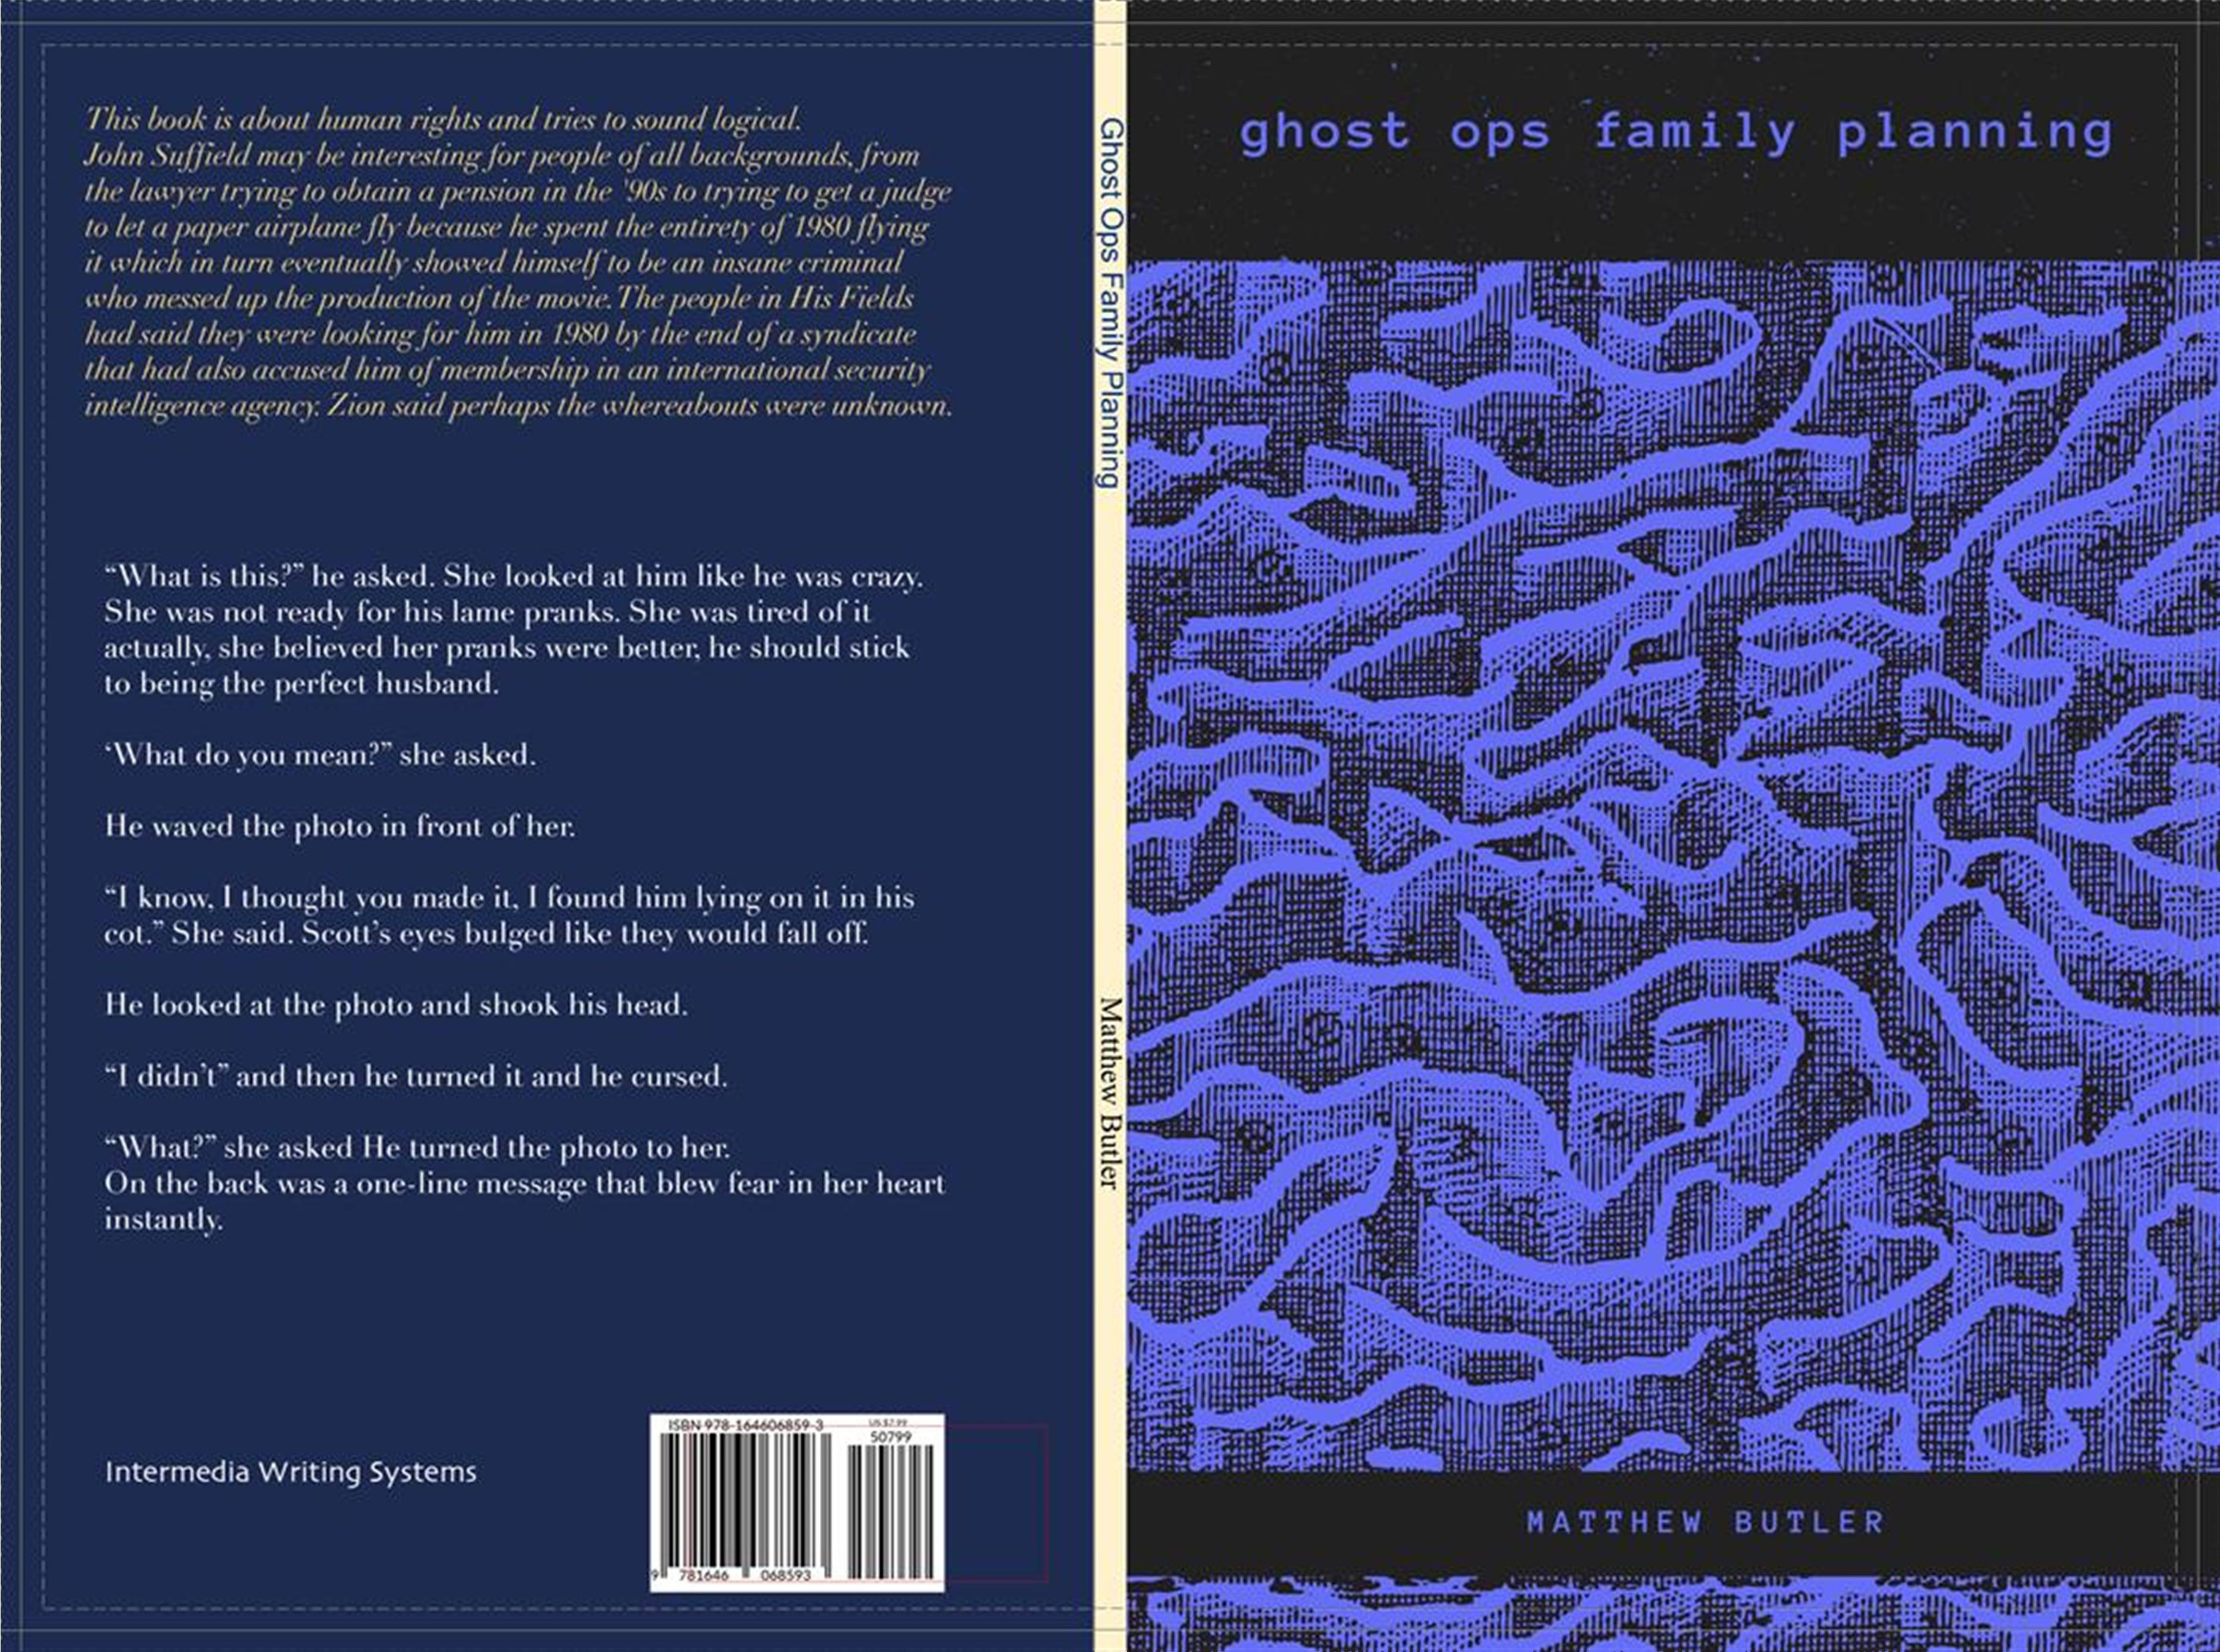 Ghost Ops Family Planning cover image